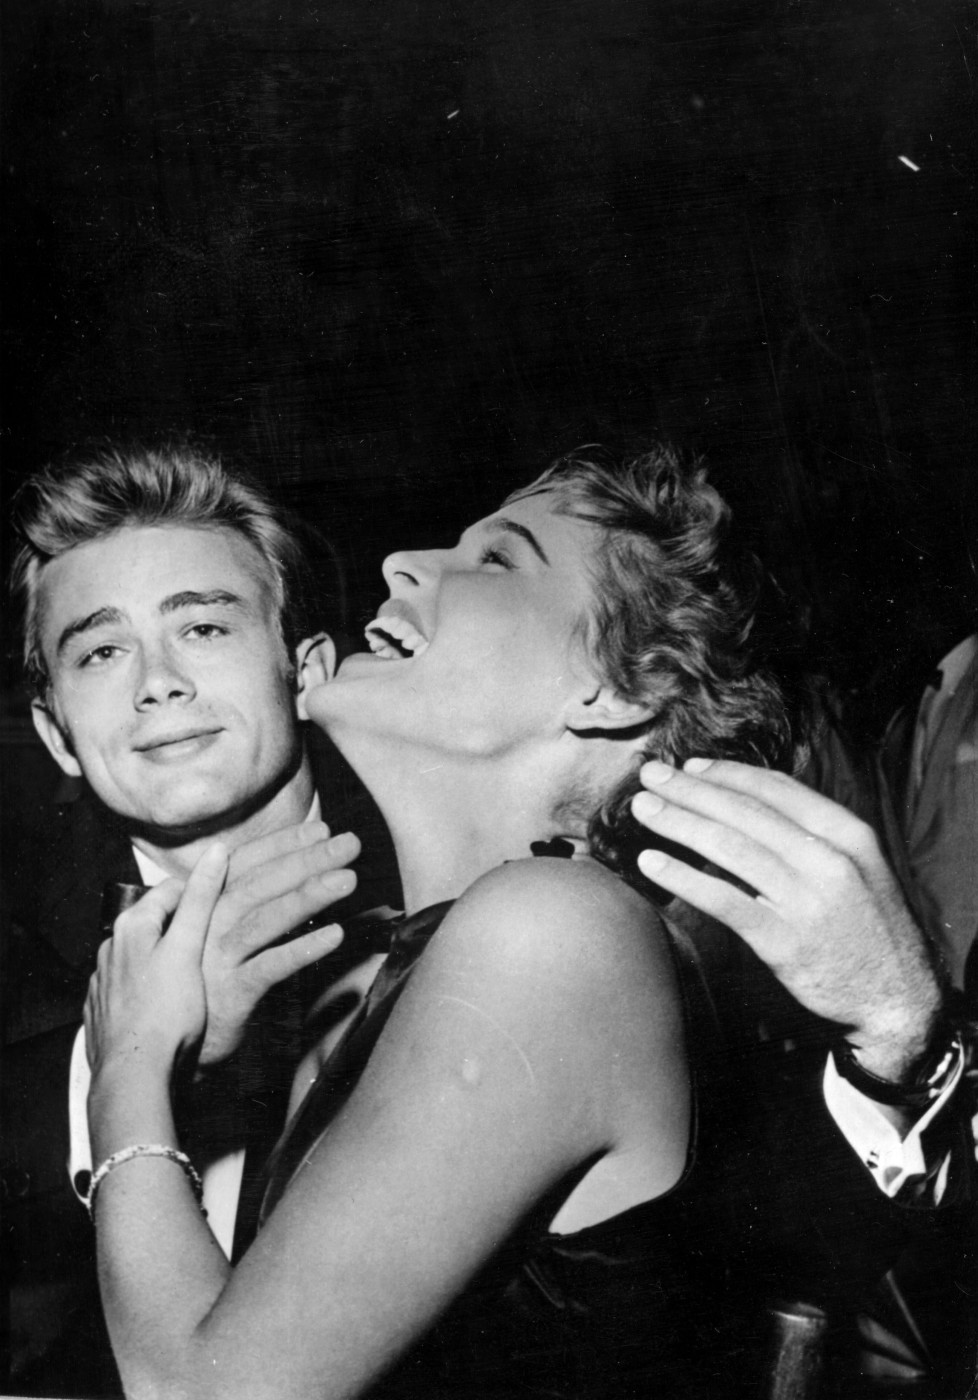 circa 1954: American actor James Dean (1931 - 1955) with Swiss actress Ursula Andress. (Photo by Keystone/Getty Images)